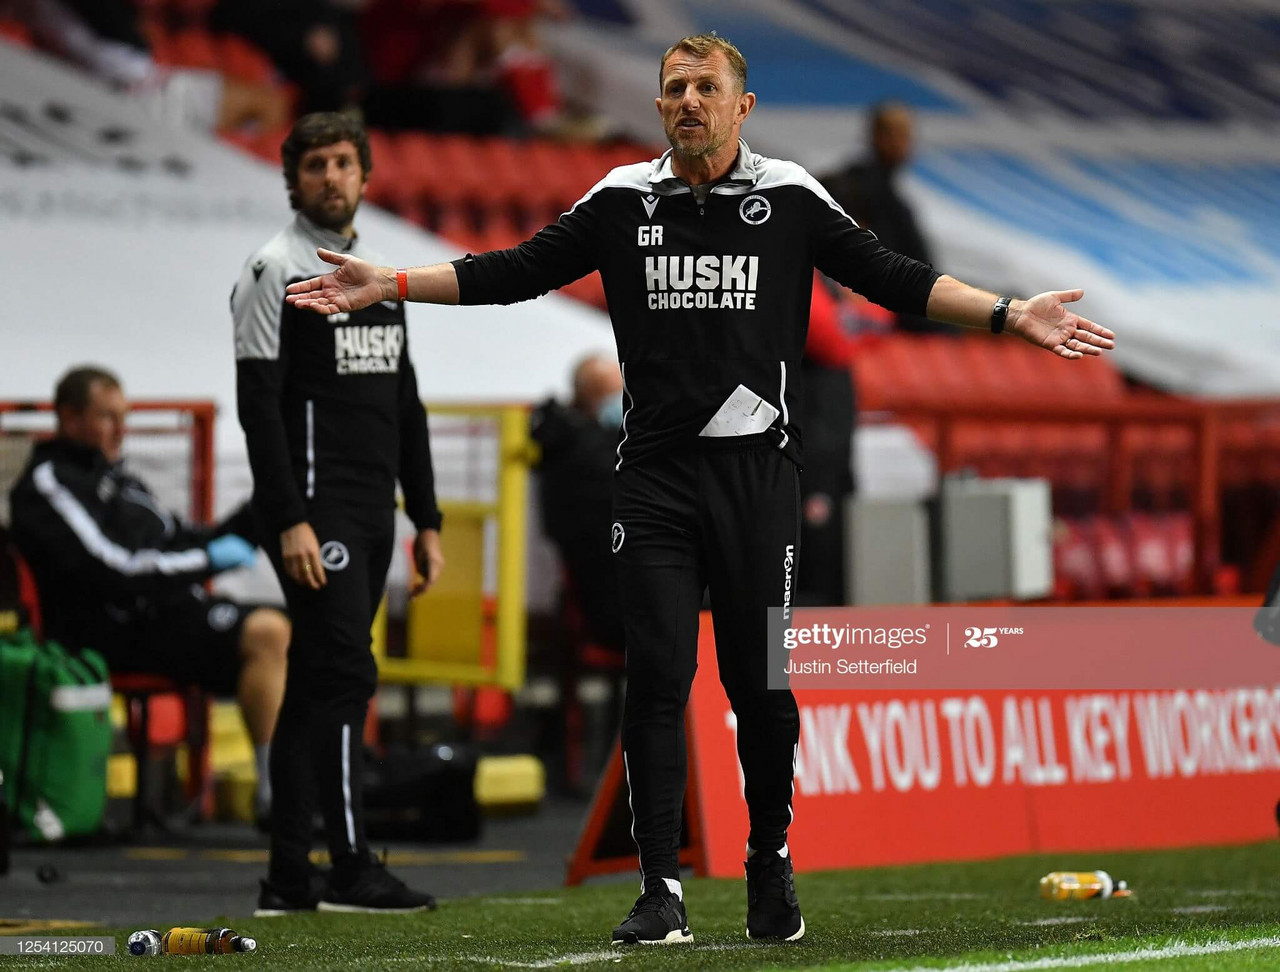 Millwall vs Middlesbrough preview: Relegation-threatened Boro face yet another stern test